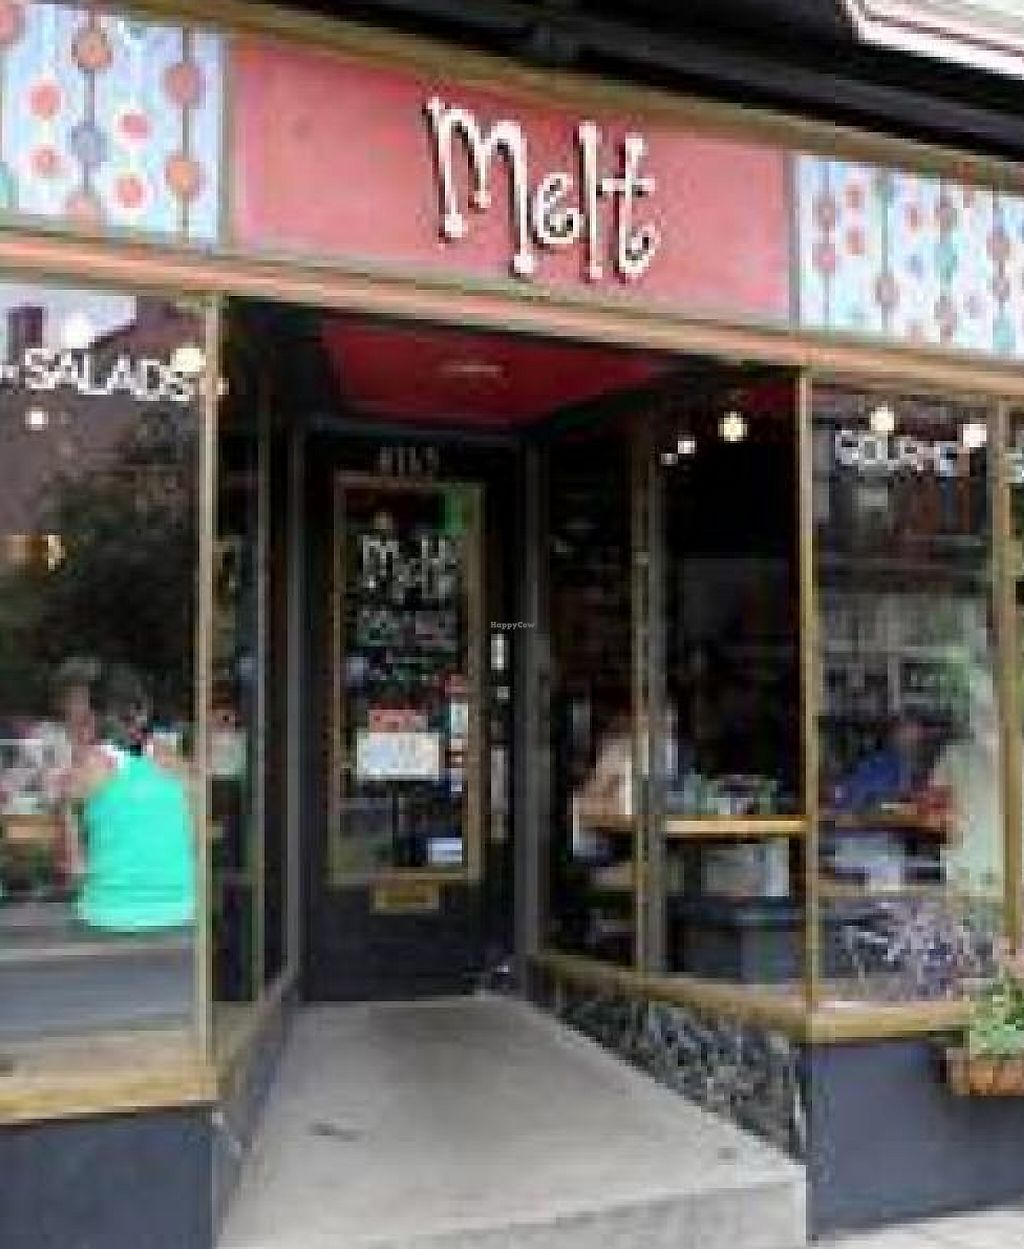 Photo of Melt  by melted2005 <br/>Melt serves up house made seitan, tofu scrambler, tempeh & tofu marianted, Vegan Cheddar, Vegan cashew cheese, as well as clean meats, animal rennet free cheese options, Gluten free options. Our Vegan Chili is super popular alone or as a 3 way!  <br/> November 22, 2013  - <a href='/contact/abuse/image/14364/216285'>Report</a>